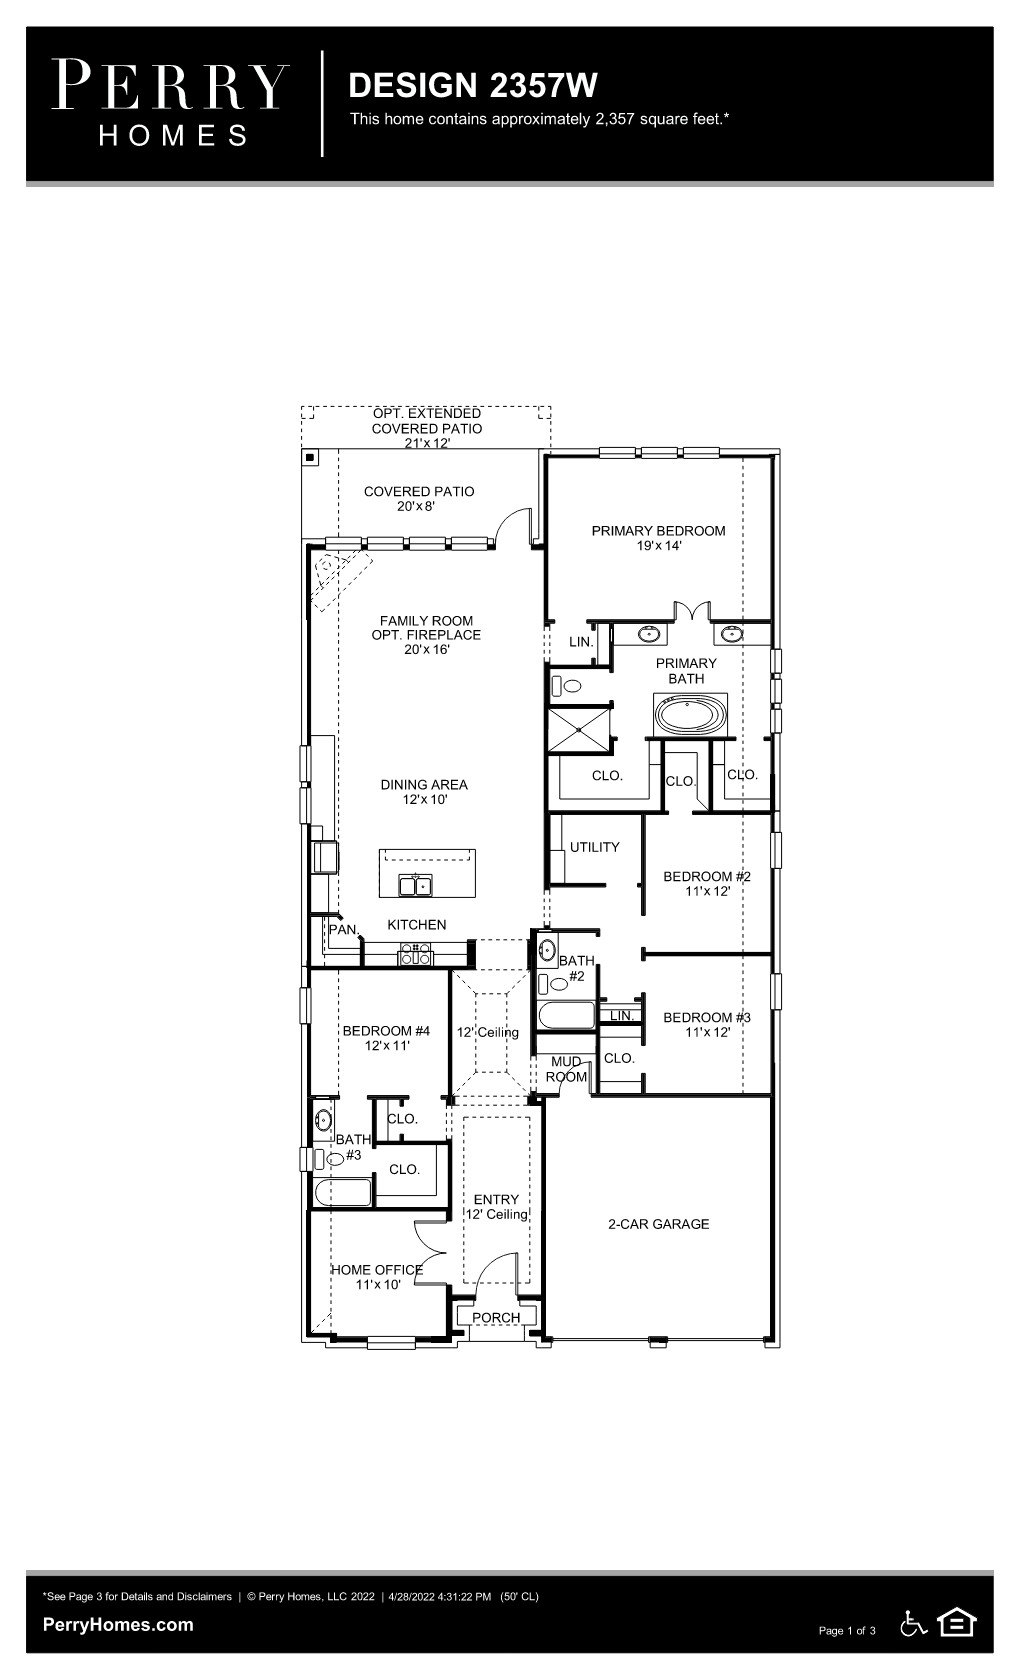 Floor Plan for 2357W